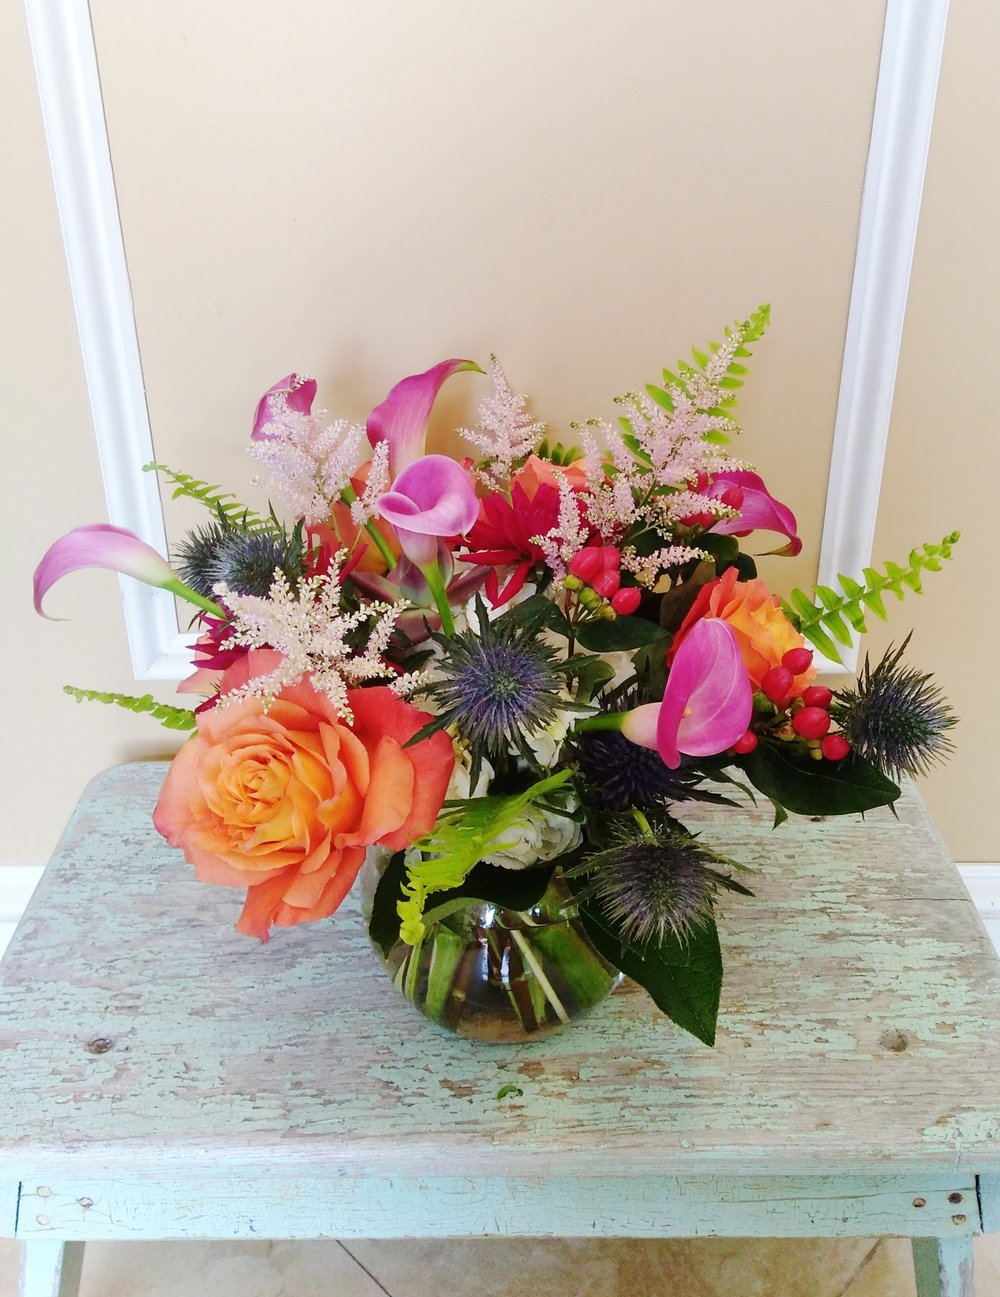 A5 $60 - $85 Cluster-style arrangements. $60 as shown.